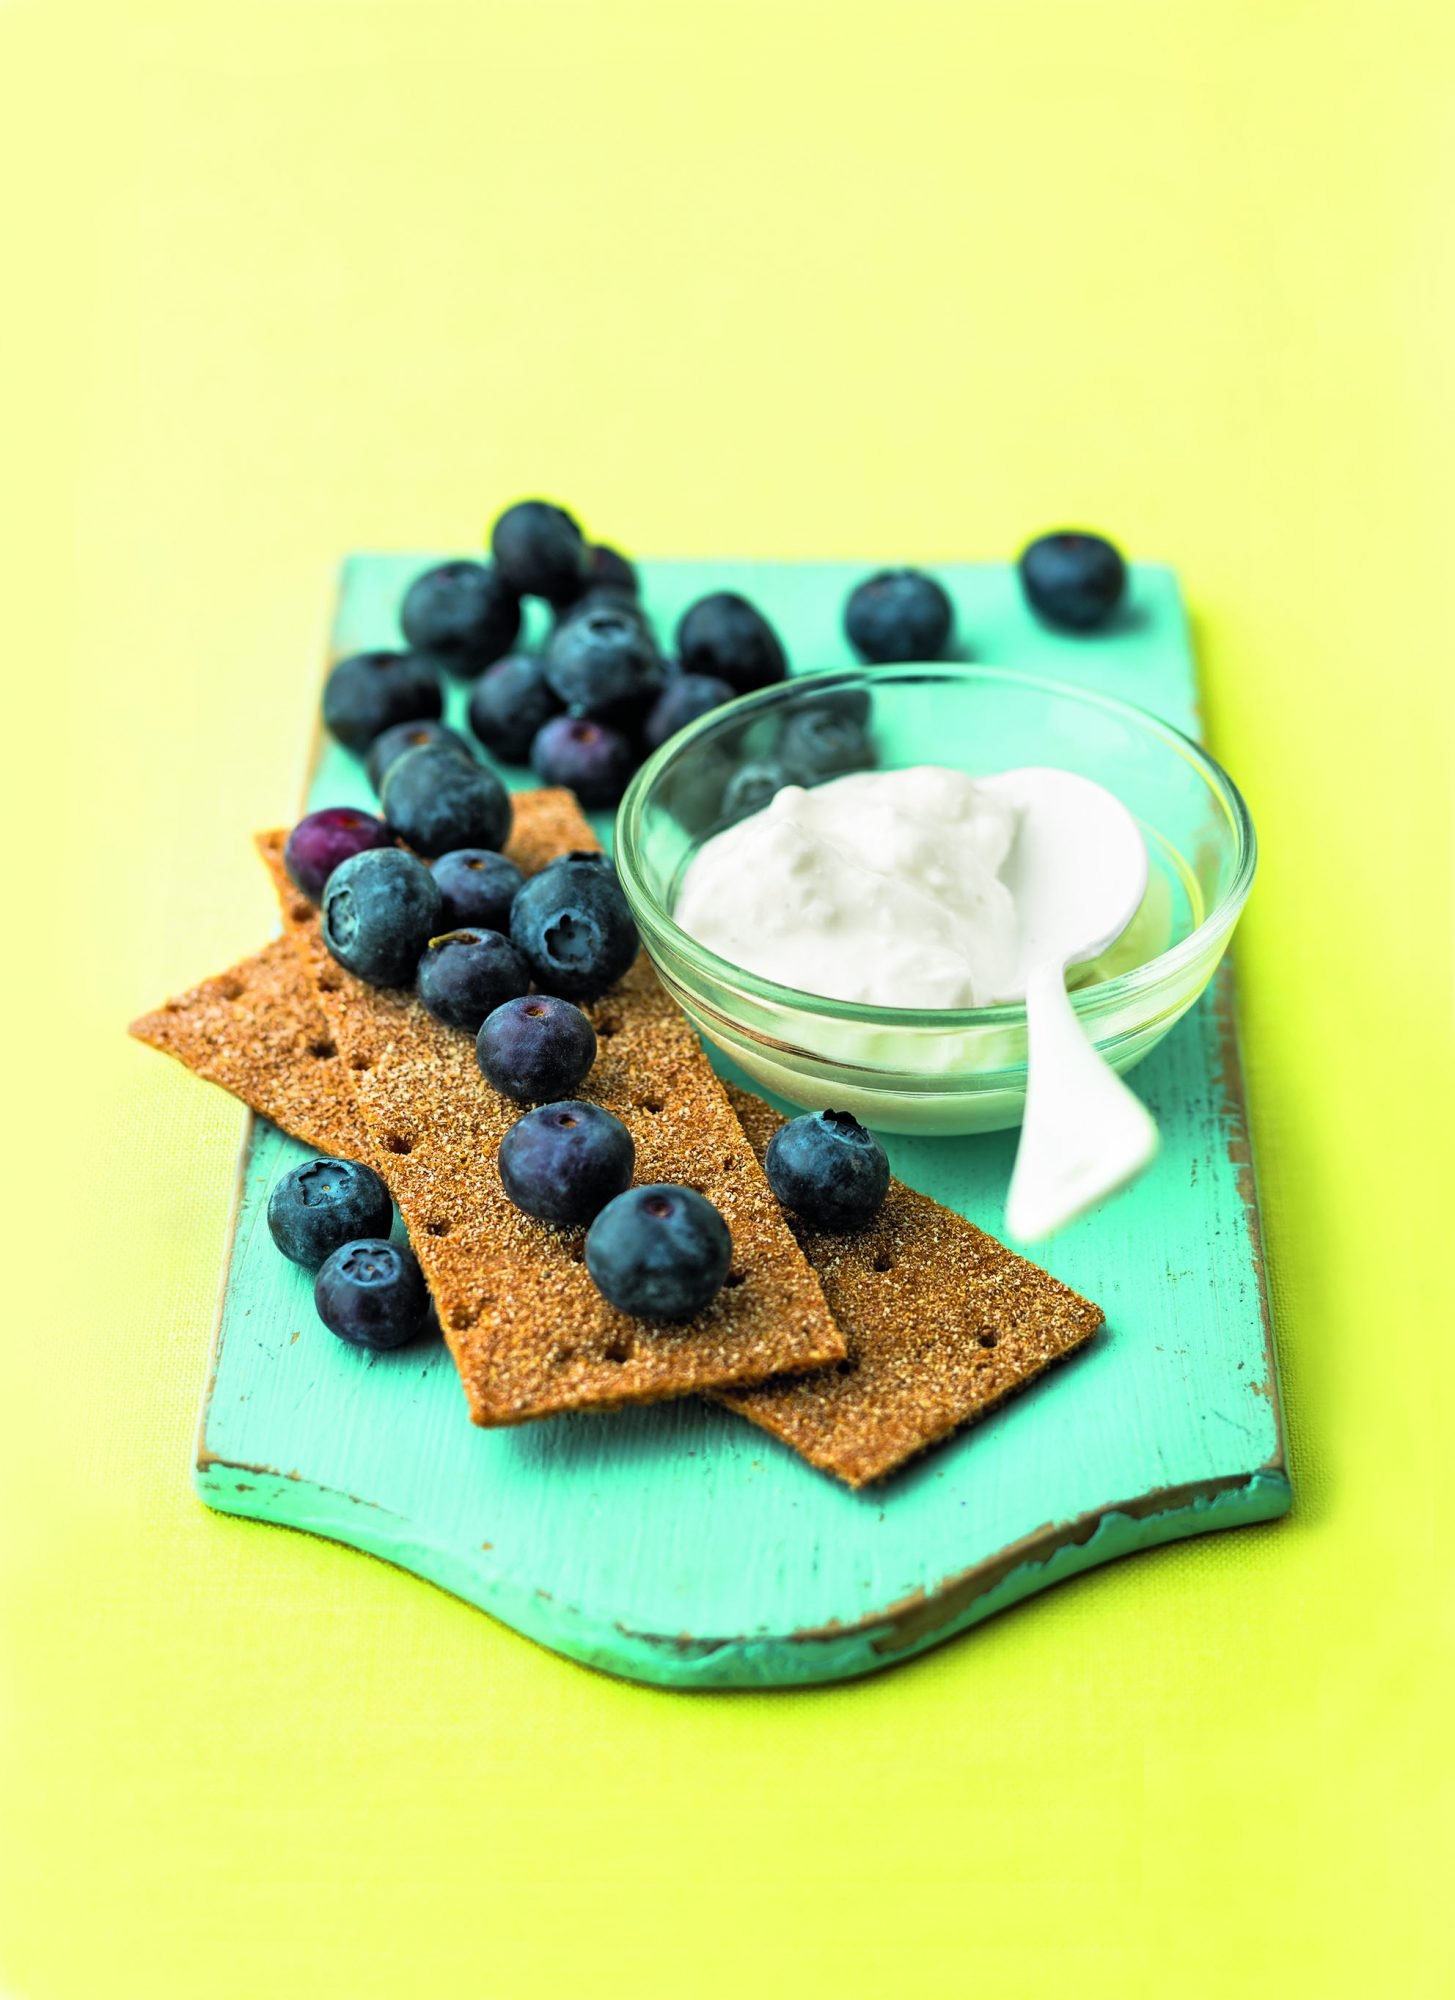 Crisp Bread with Cottage Cheese and Blueberries